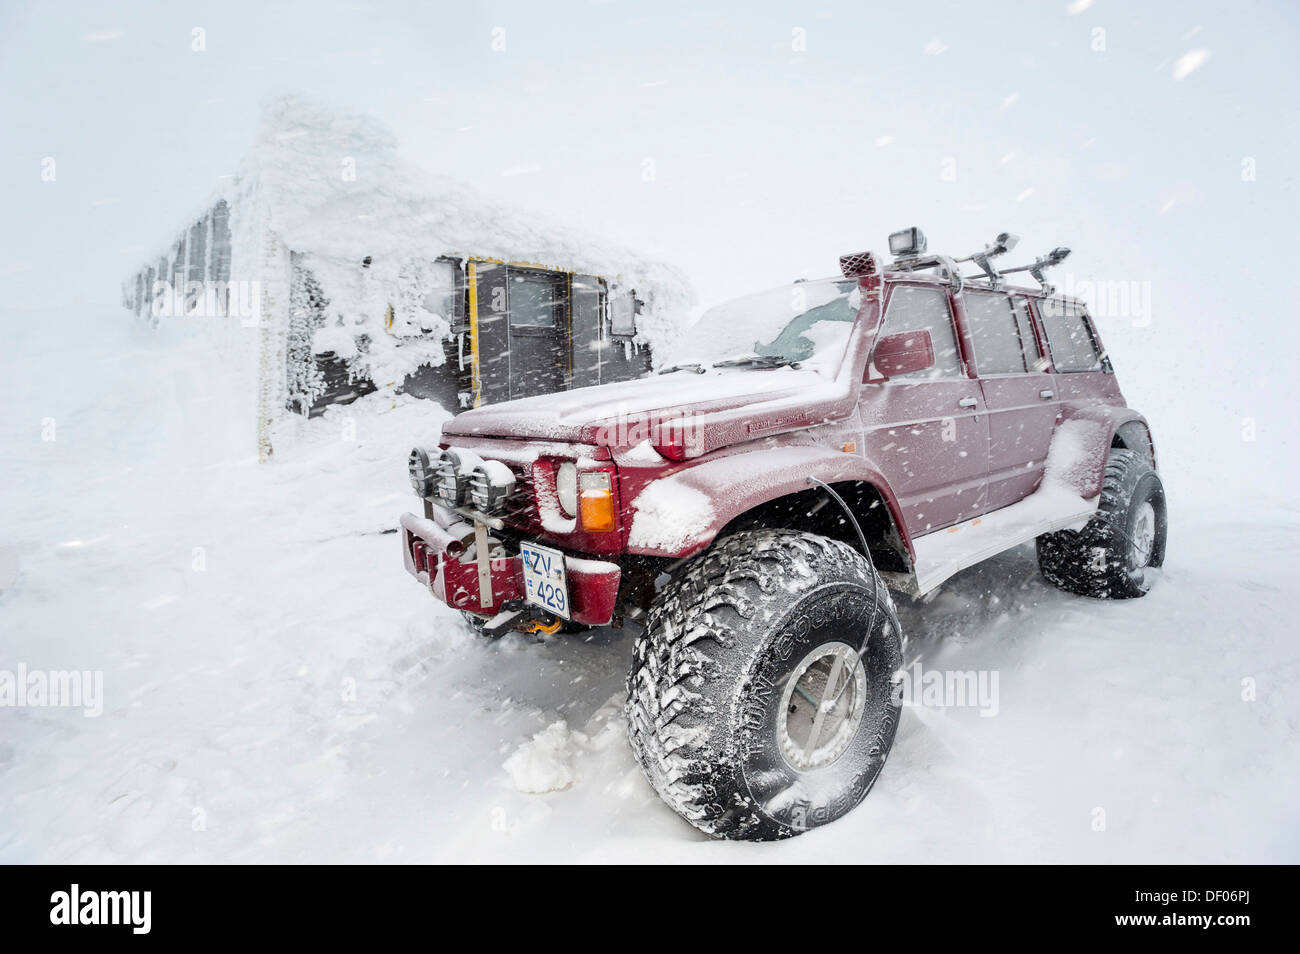 Super Jeeps in front of the snow-covered and frozen Grímsvoetn Hut, Icelandic Highlands, Iceland, Europe - Stock Image